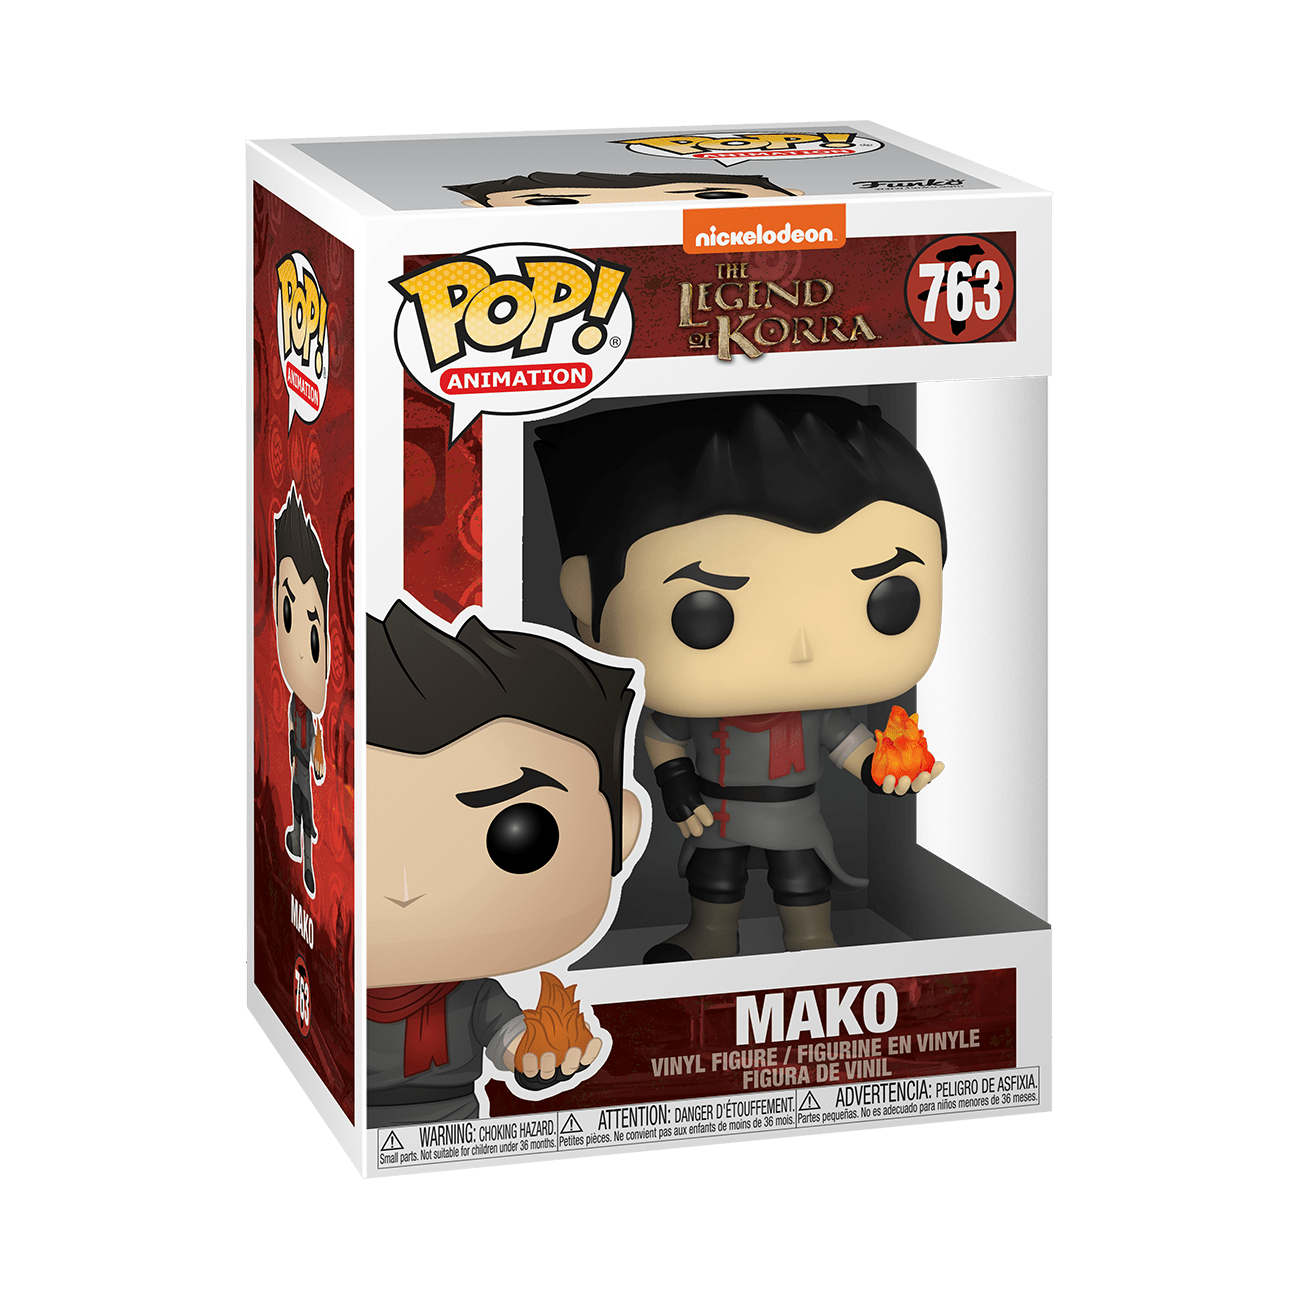 Legend of Korra Mako Vinyl Figure Animation Funko Pop